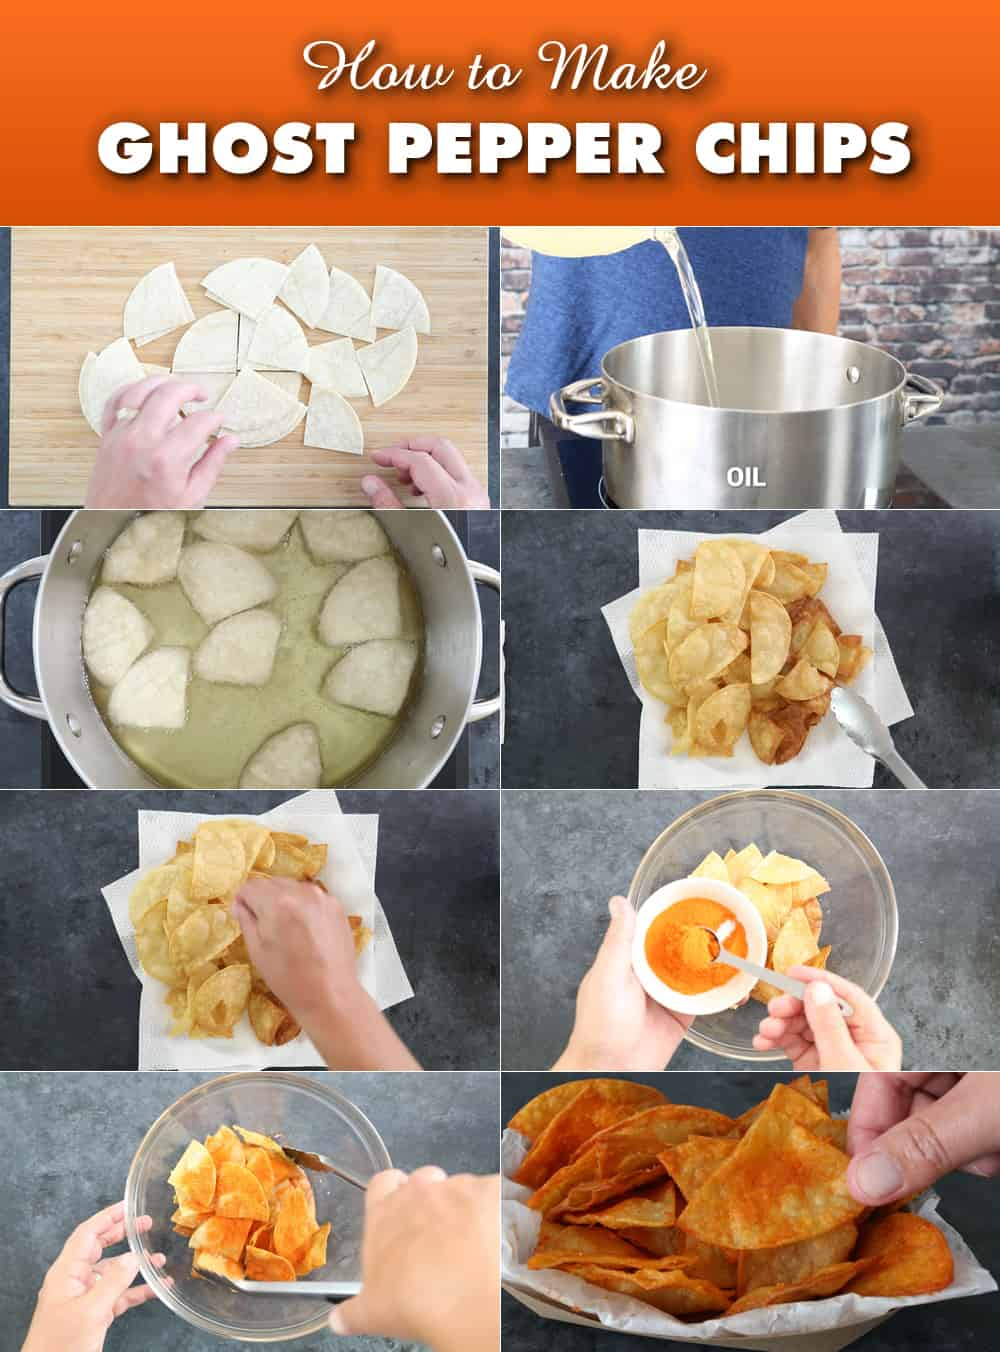 How to Make Ghost Pepper Chips